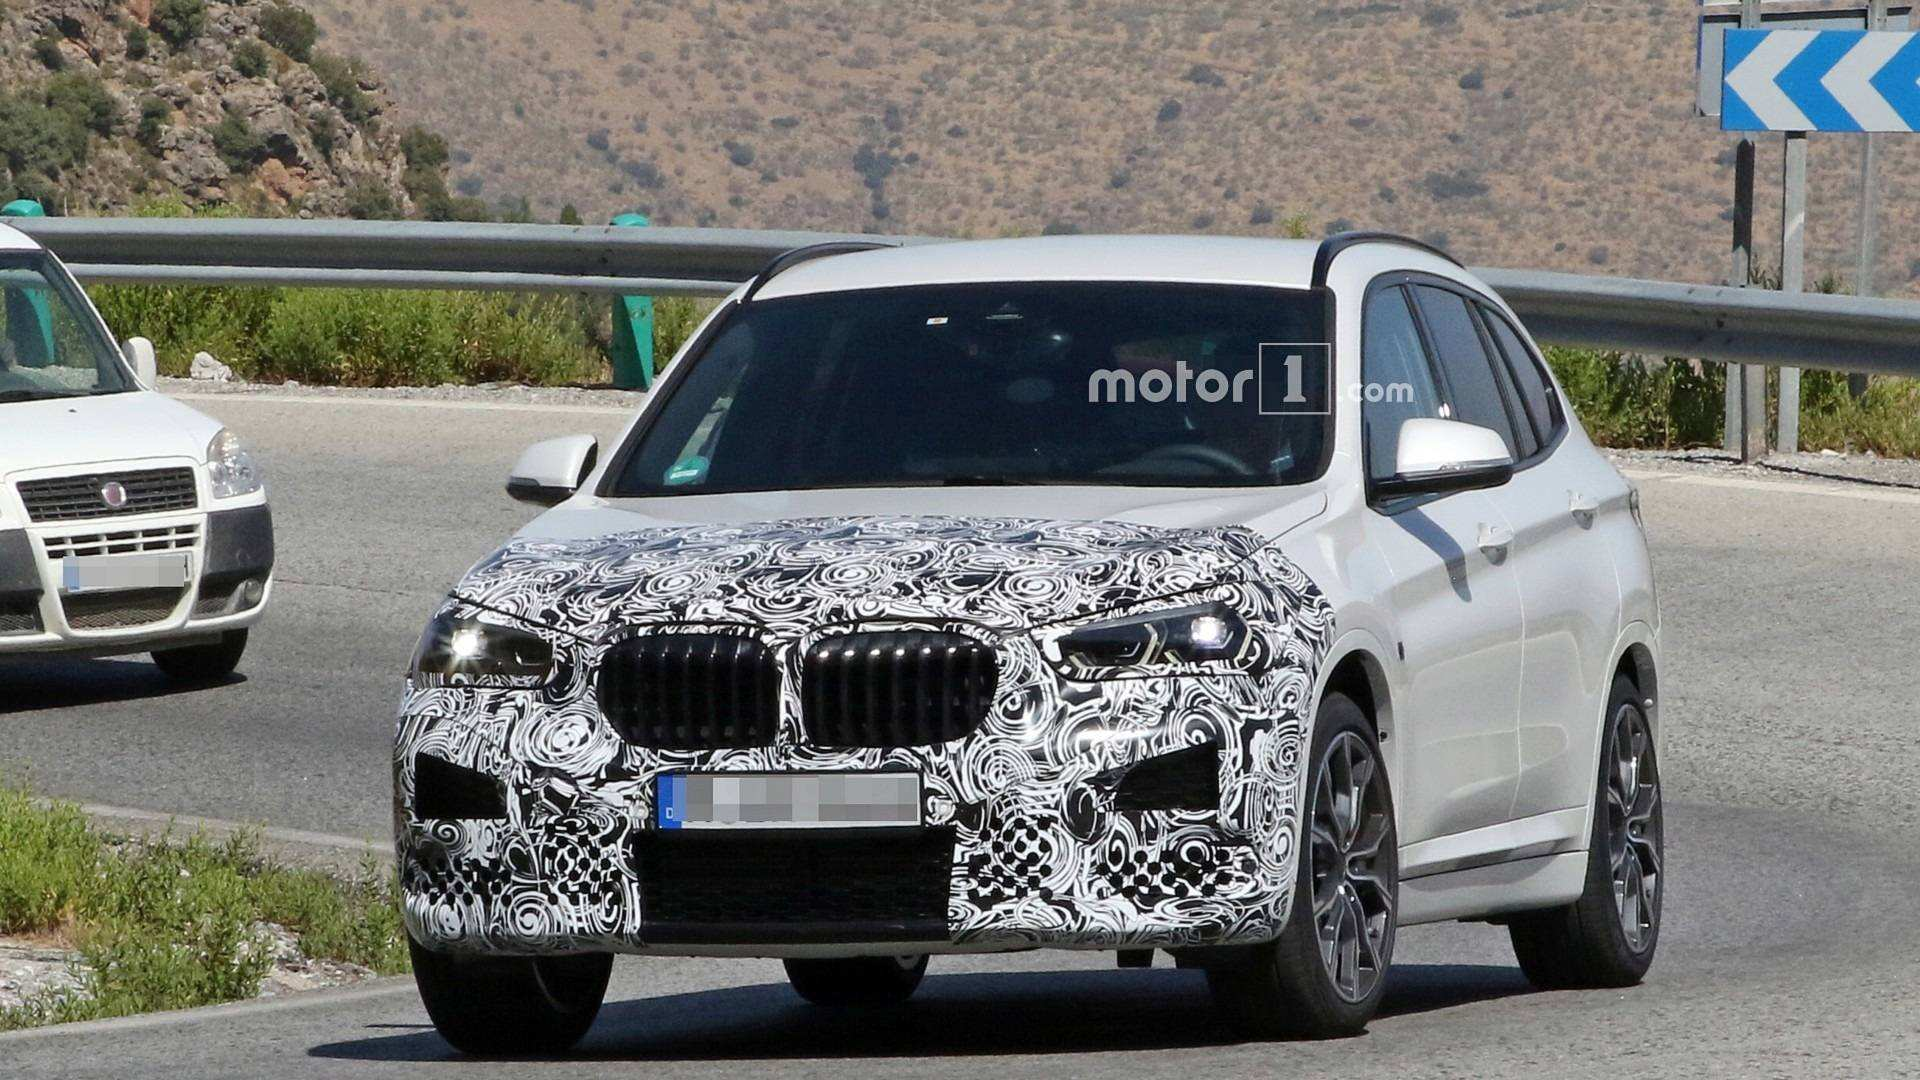 98 New BMW X1 2020 Release Date by BMW X1 2020